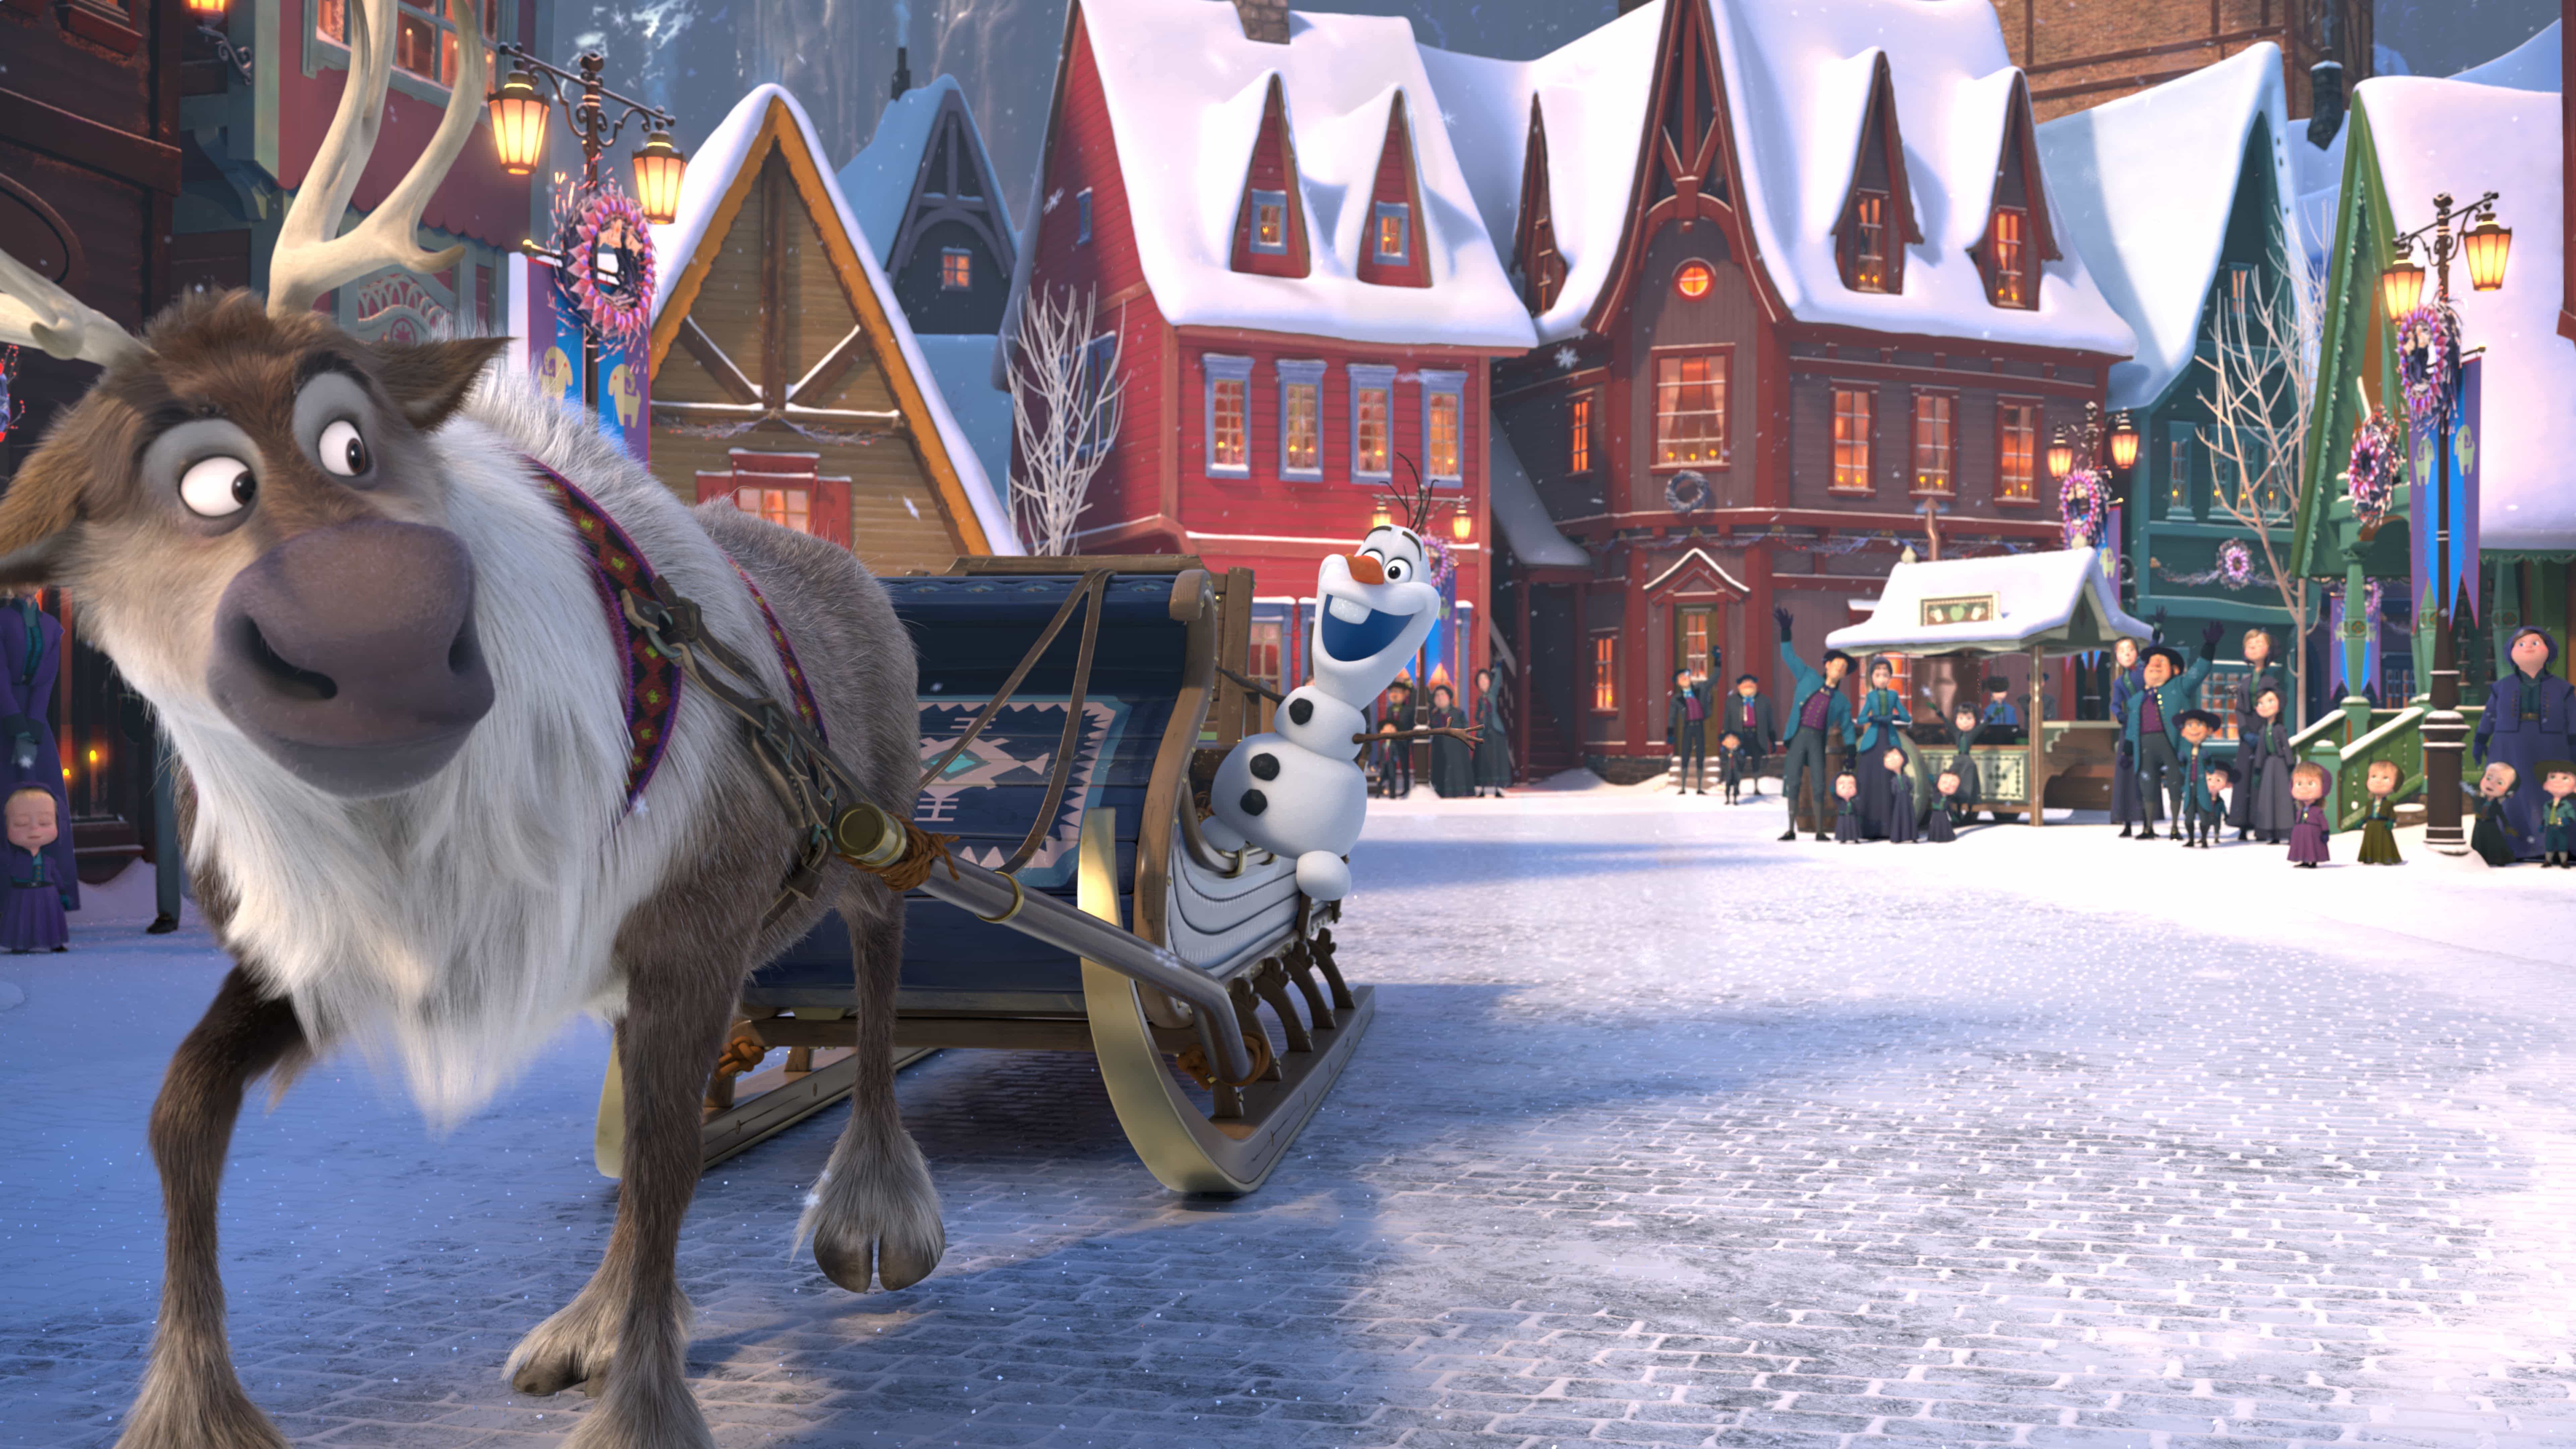 Frozen Coloring Pages Olaf And Sven : 7 cool facts about olaf's frozen adventure hispana global